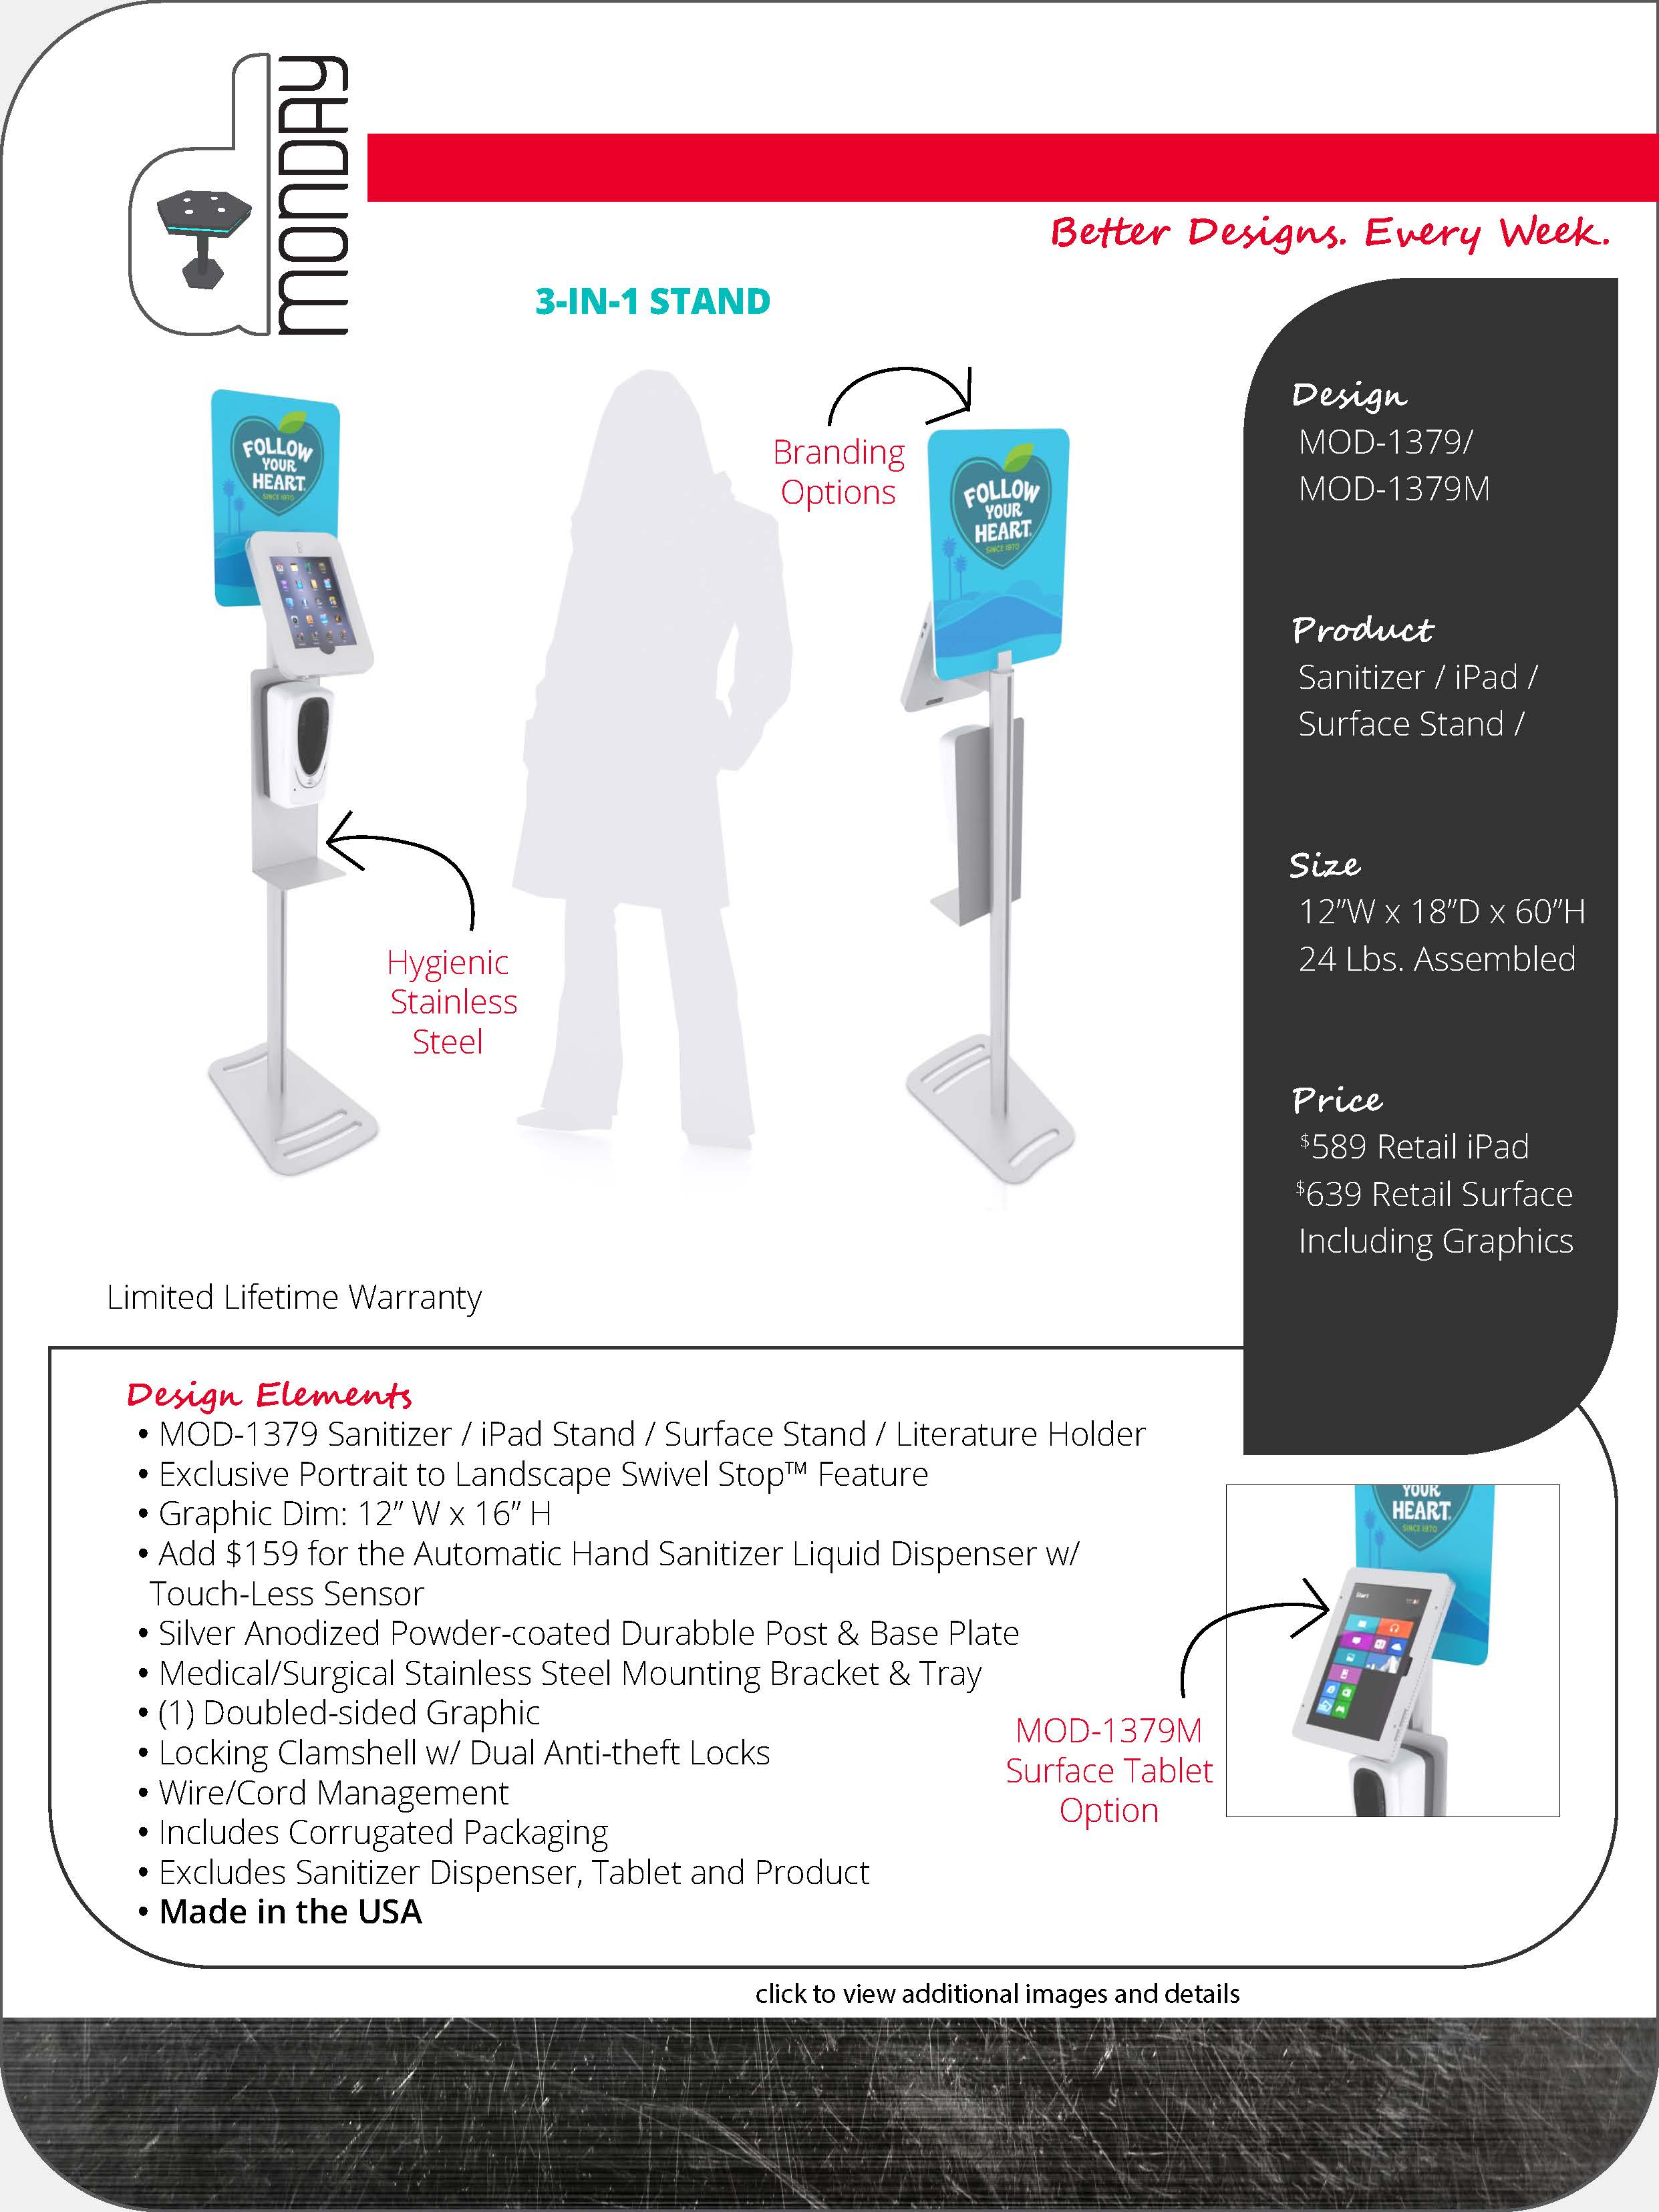 Multi-function Hand Sanitizer Stands with Tablet Option